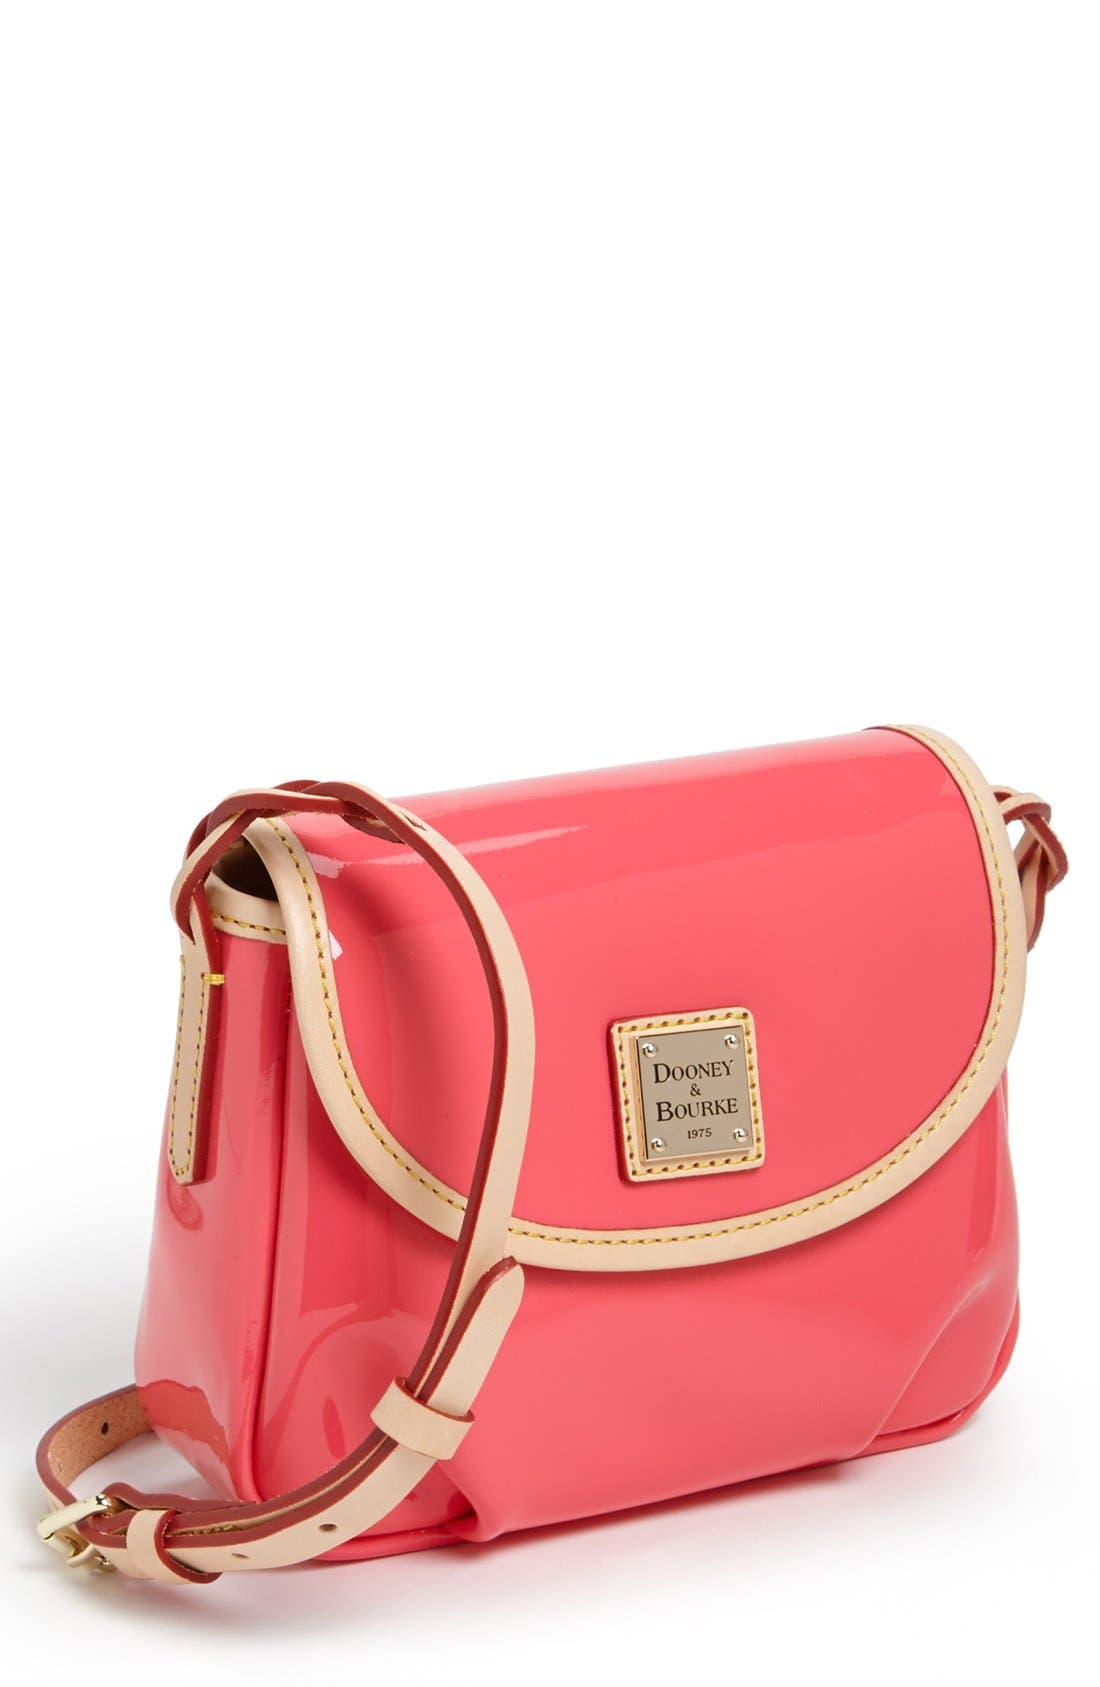 Main Image - Dooney & Bourke Patent Leather Crossbody Bag